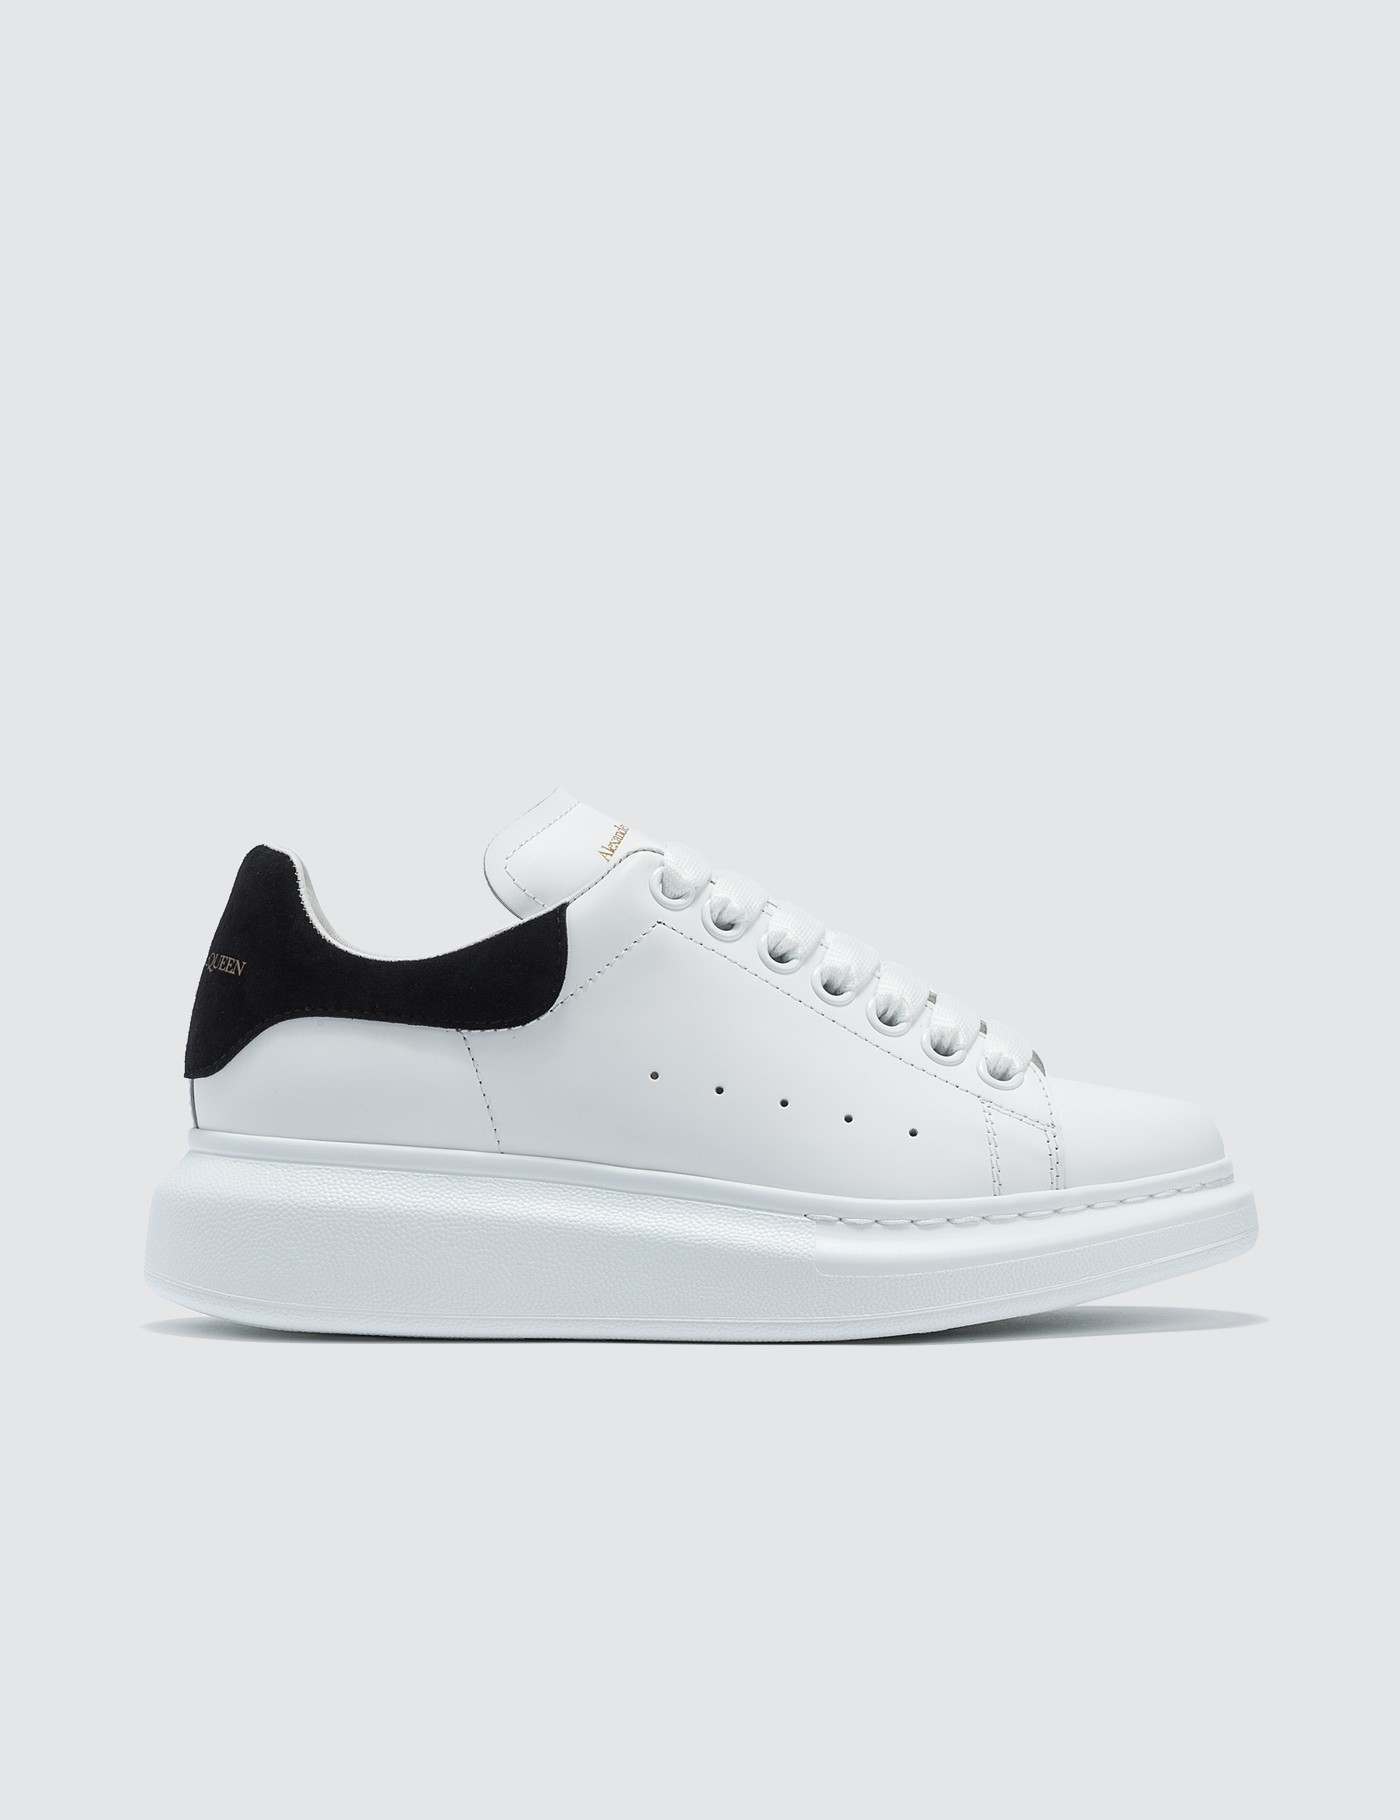 super popular 0548c b4c9d Raised-sole Low-top Leather Trainers, Alexander McQueen